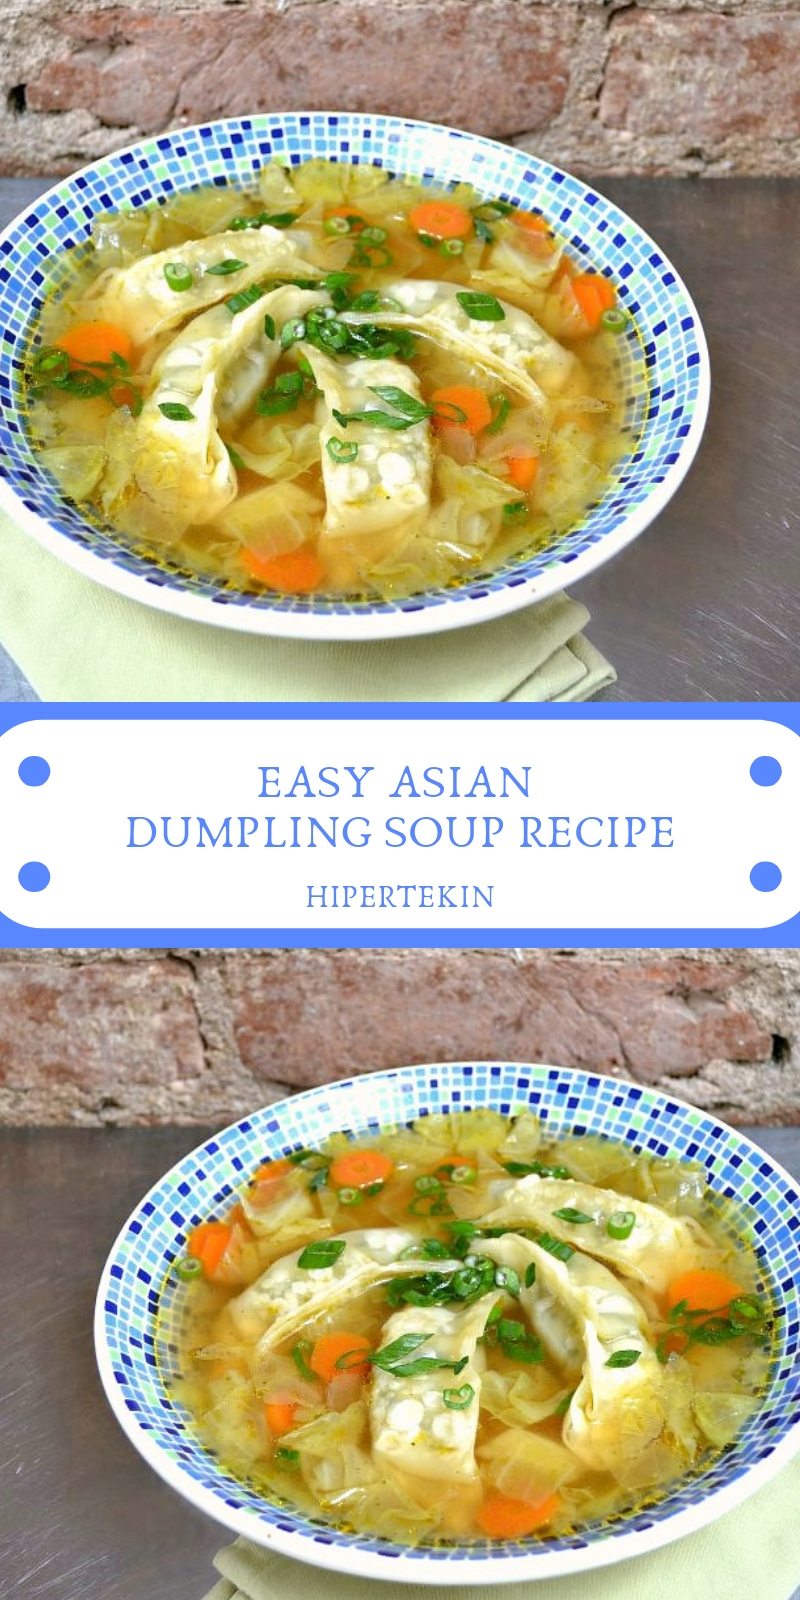 EASY ASIAN DUMPLING SOUP RECIPE